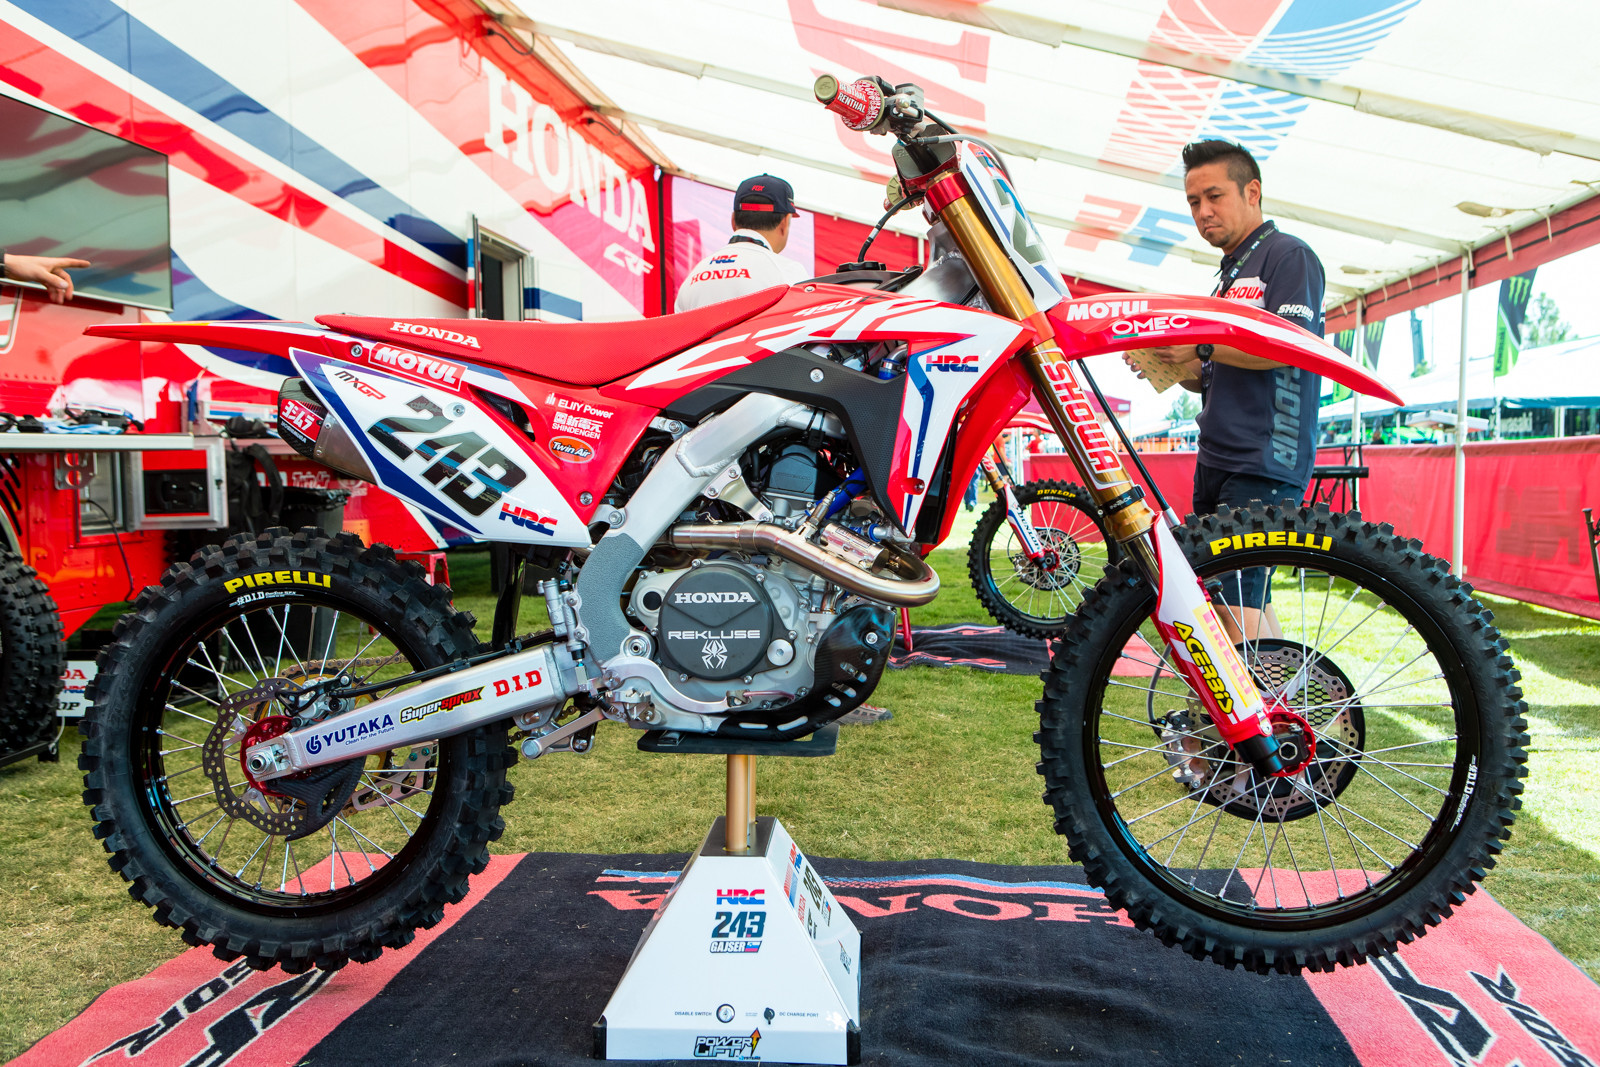 Tim Gajser's team went all out by shipping a complete GP bike for him to use, followed up by some Supercross suspension testing out at Honda's Corona test track before this weekend's event.